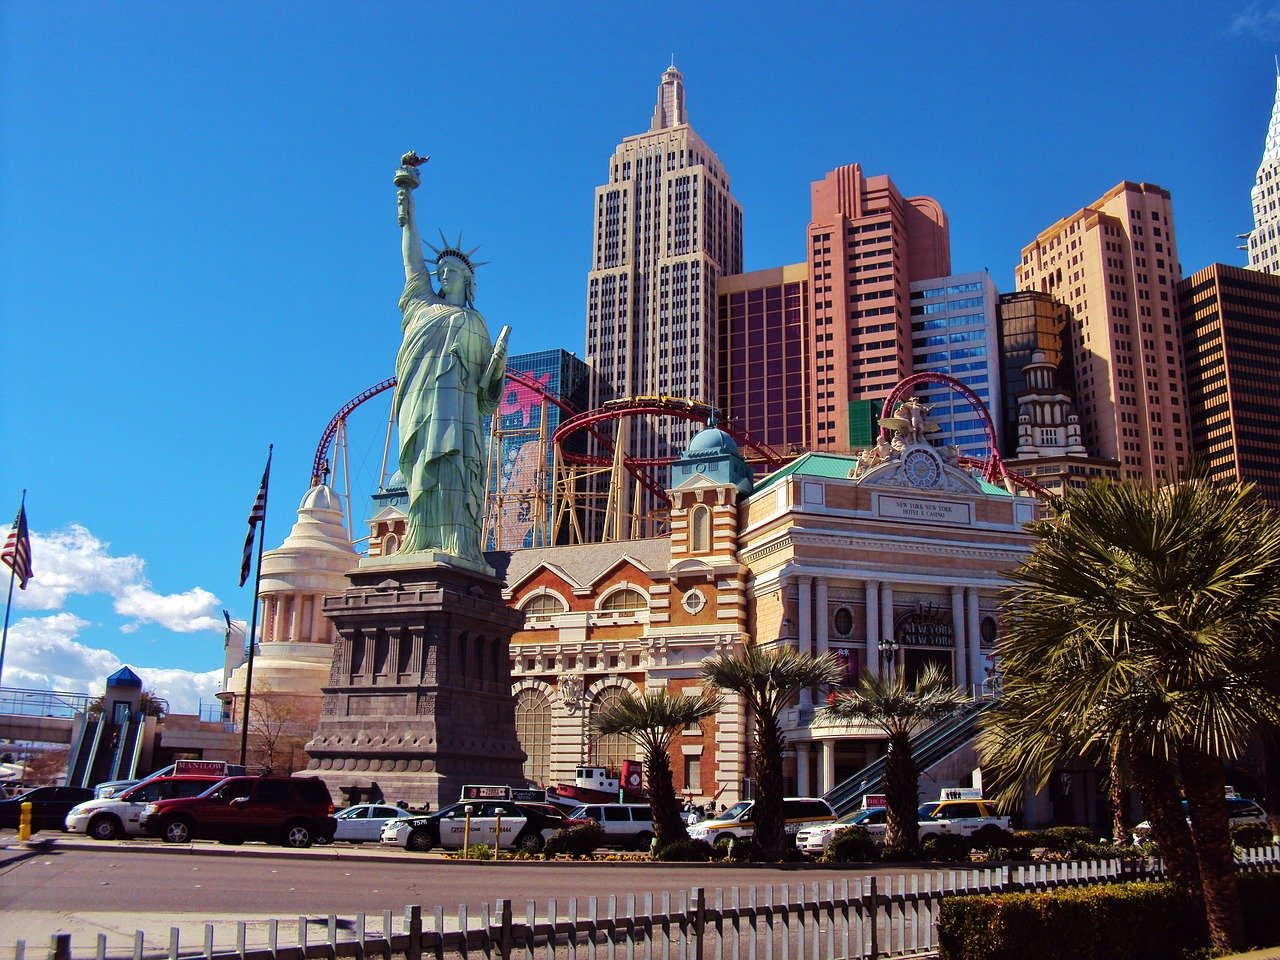 UStravel.nl has been a tailor-made specialist for travel to the USA and Canada for over 20 years